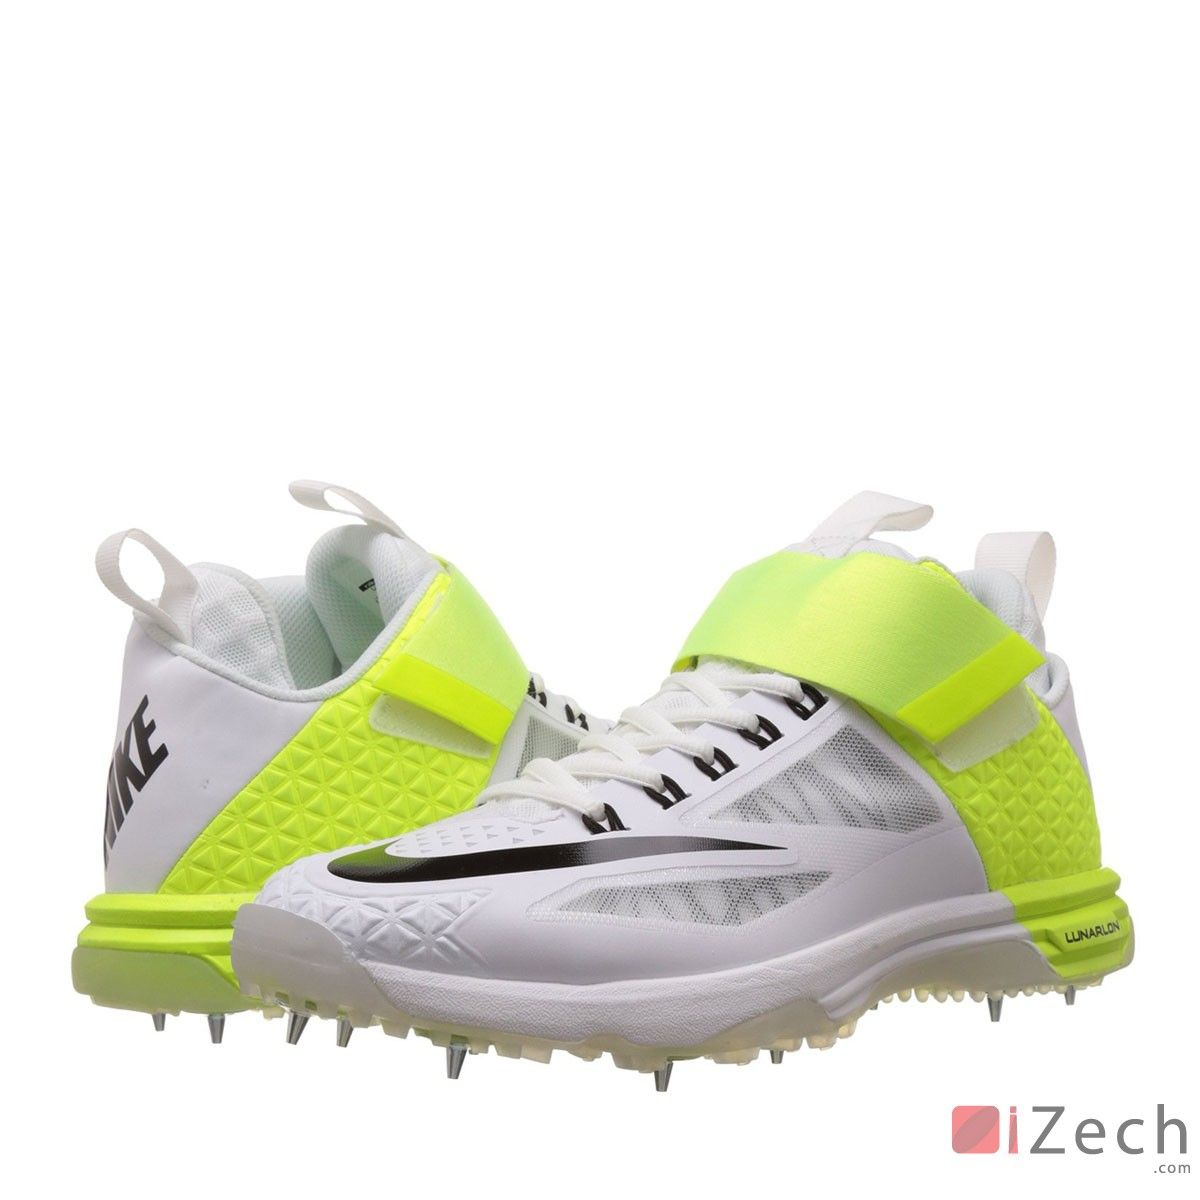 save off 94ee0 2c365 Nike Lunaraccelerate 2 White Cricket Shoes